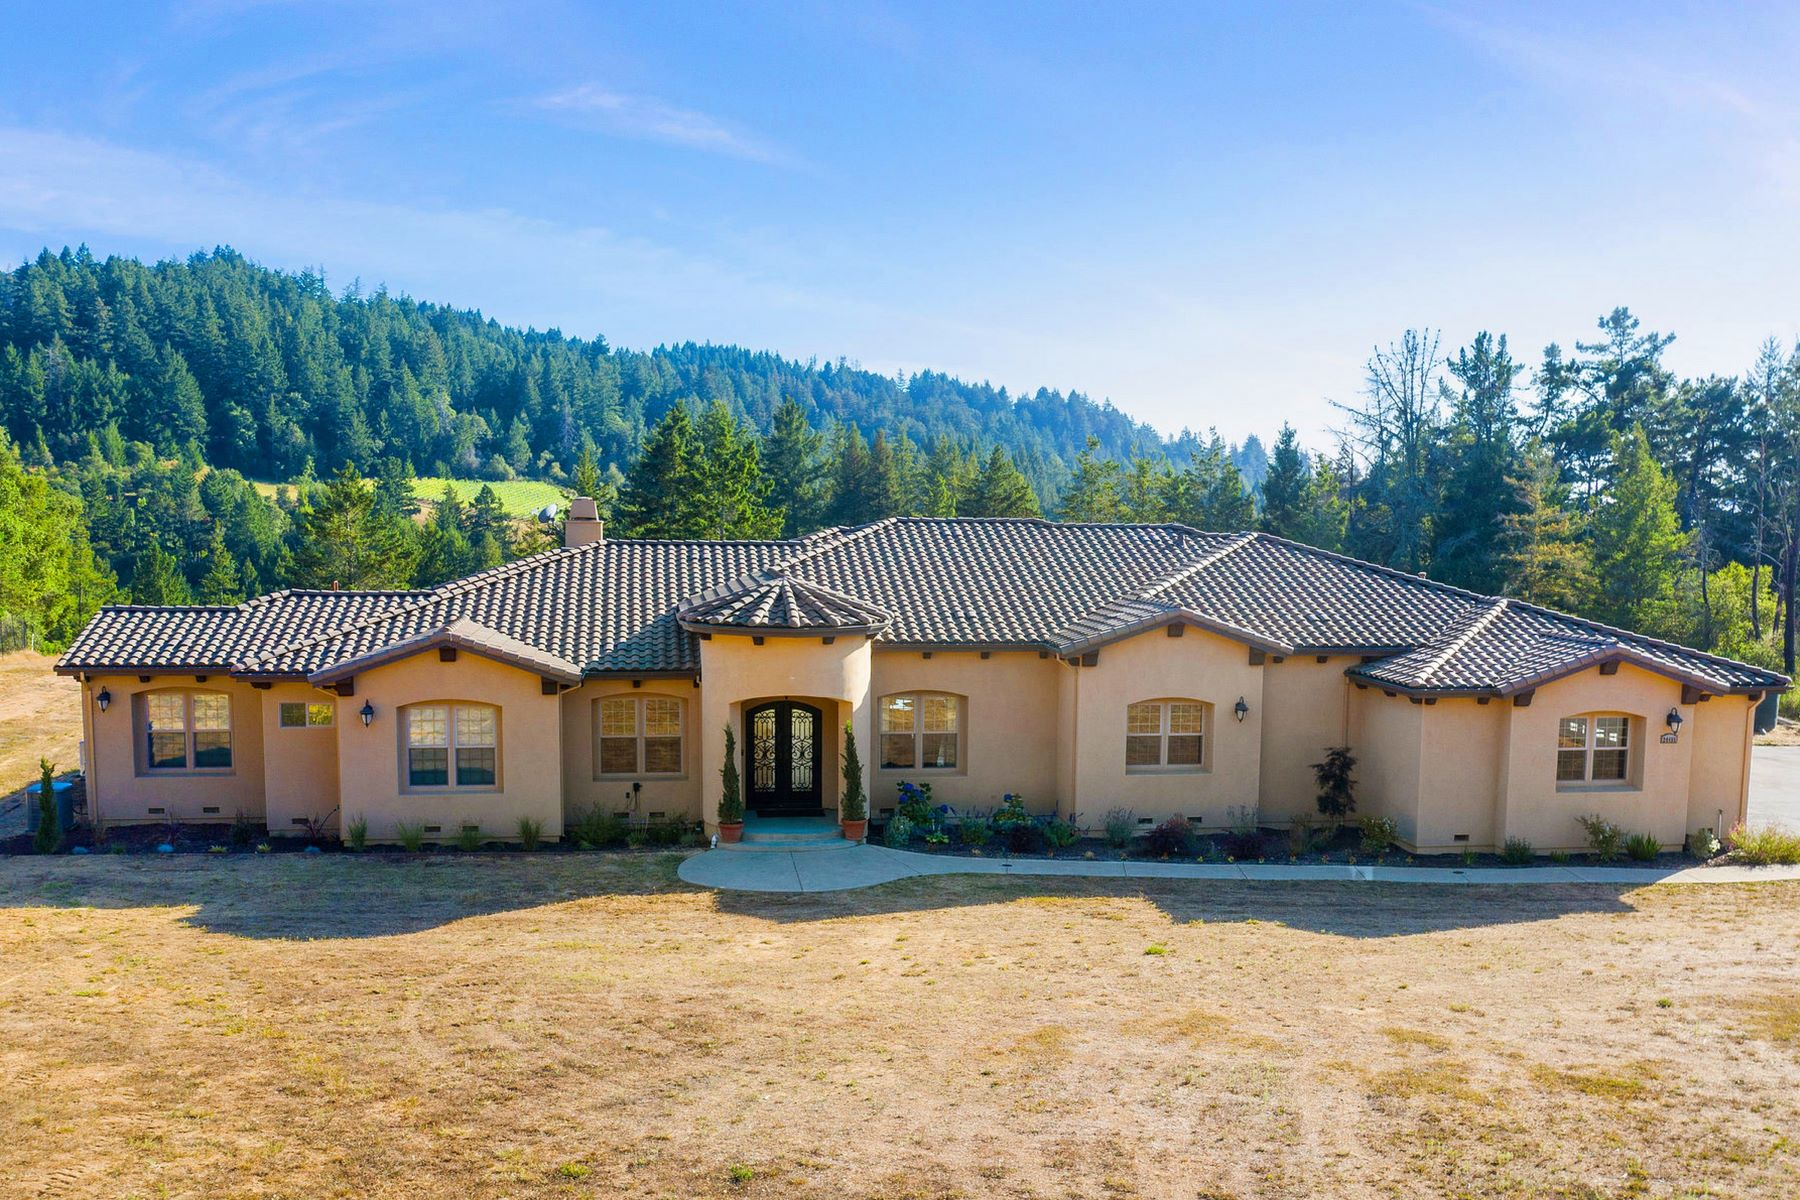 Single Family Homes for Active at Prime location, quality craftsmanship, 9 acres usable land, built in 2013 24455 Loma Prieta Avenue Los Gatos, California 95033 United States